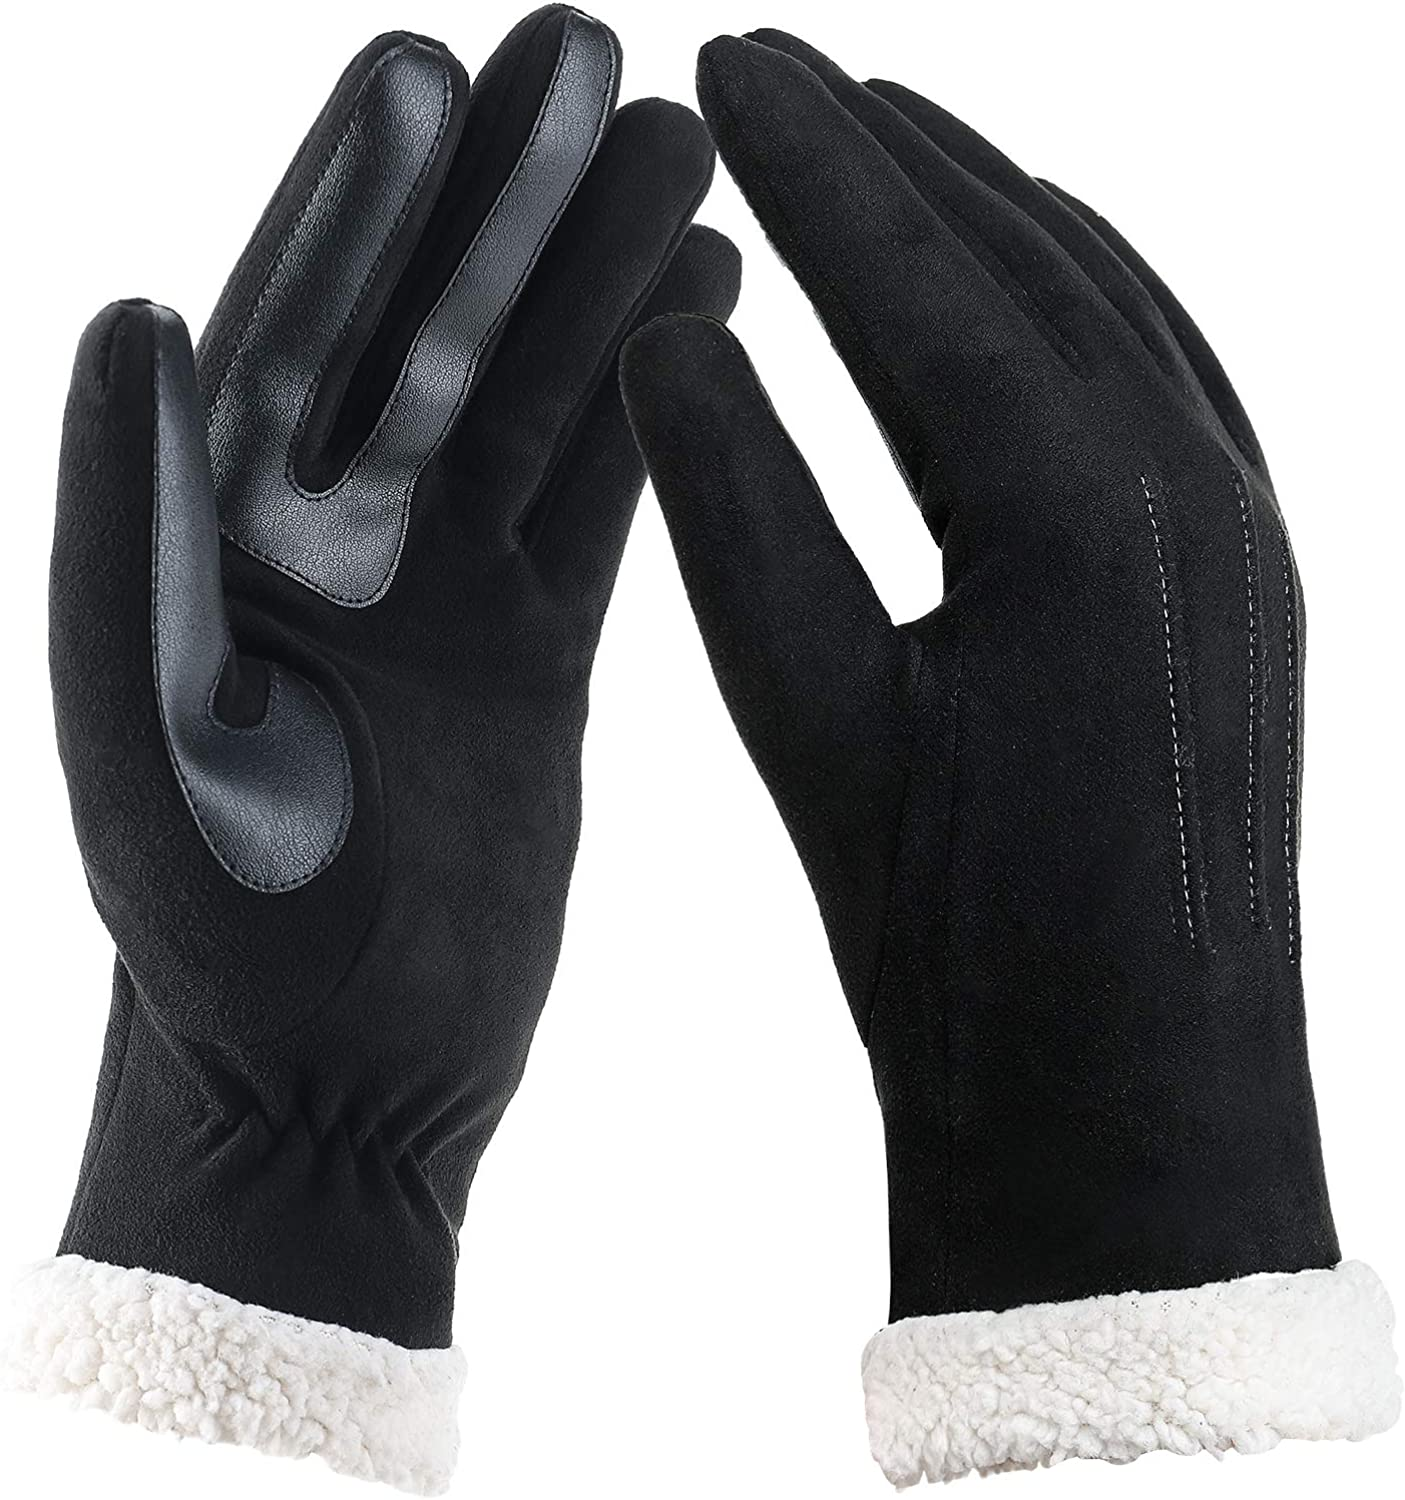 WANSIHE Winter Warm Touchscreen Thick Gloves for Women,Soft and Stretch Microsuede Soft Suede Plush Driving Gloves